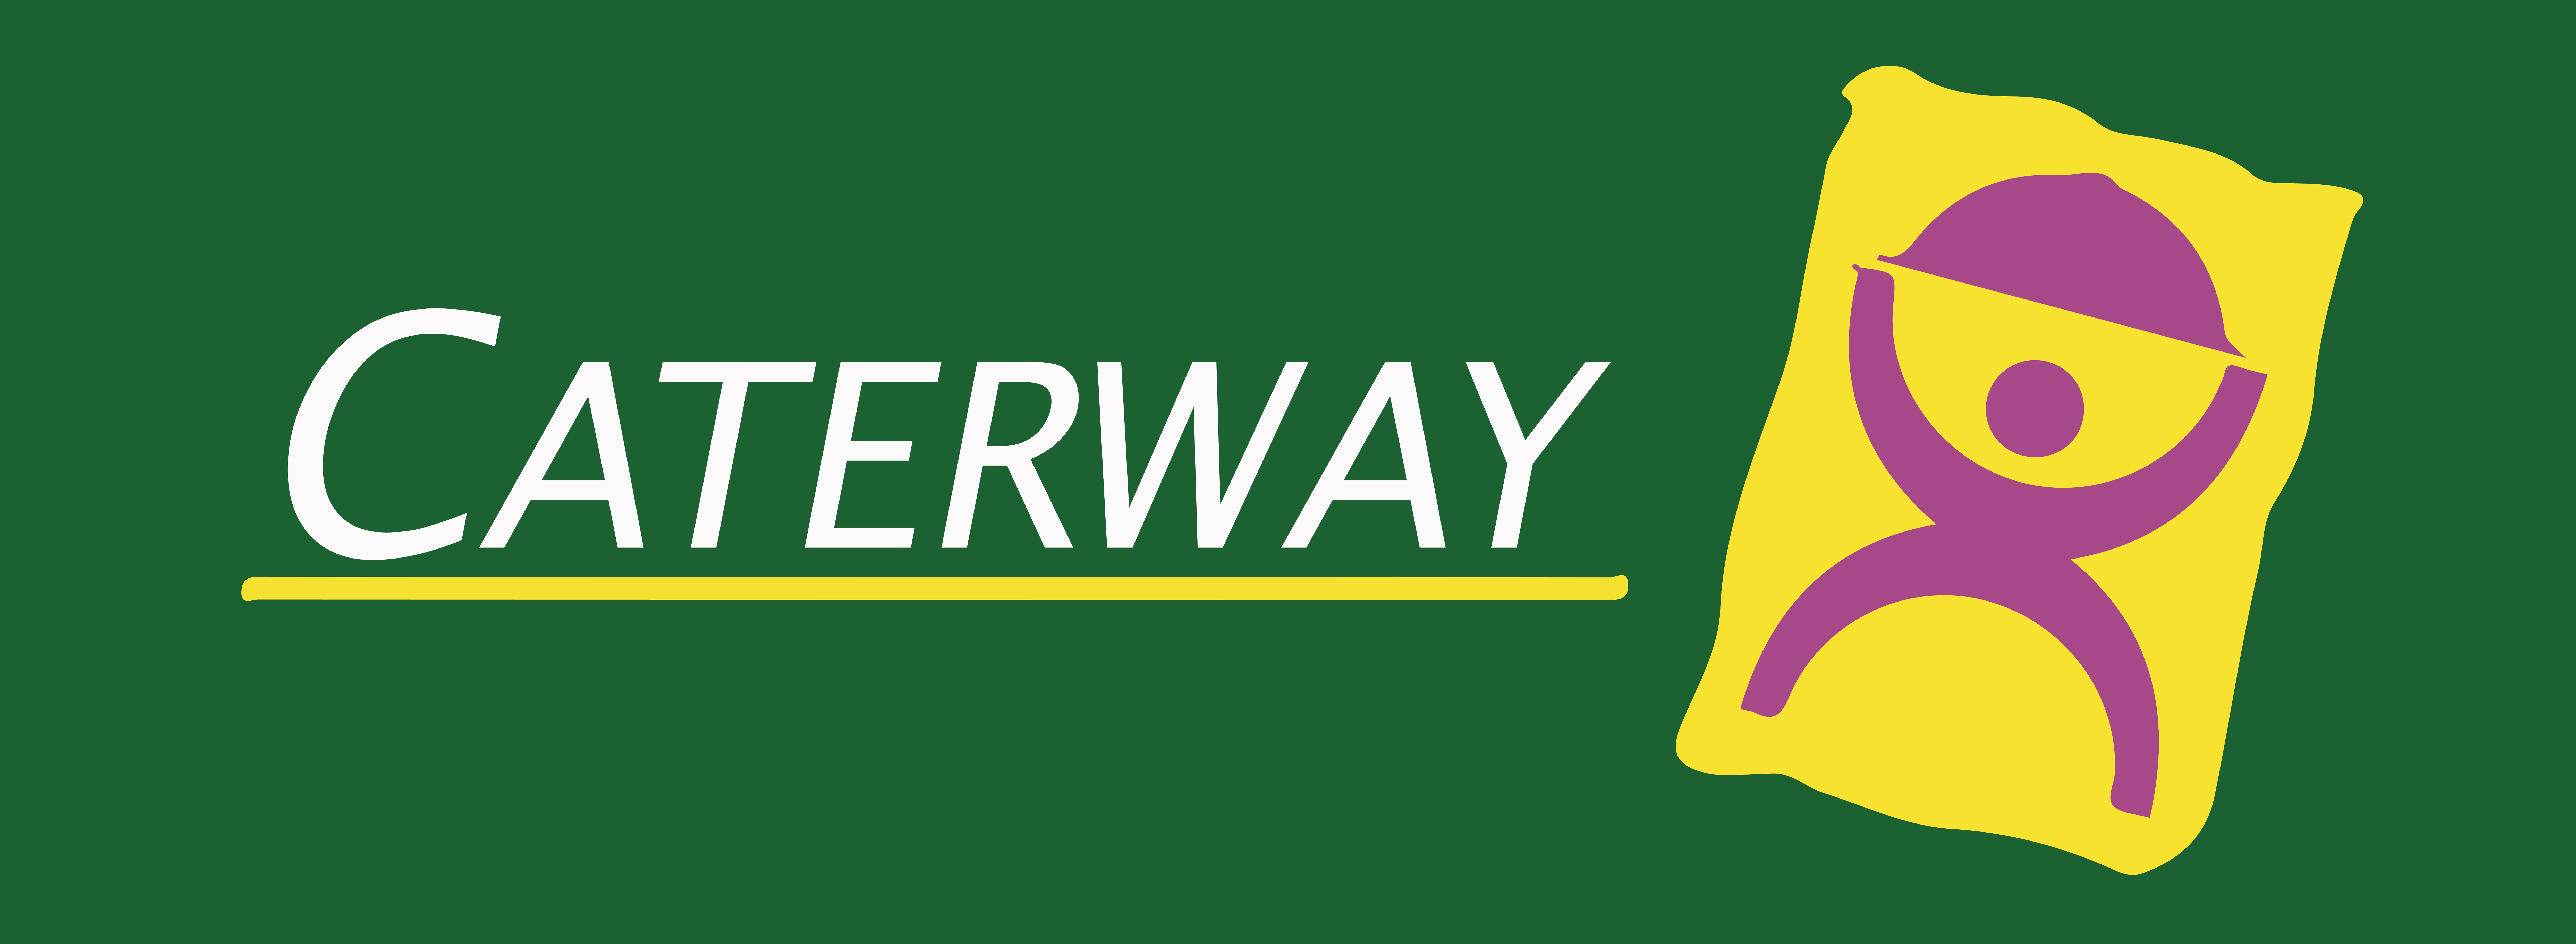 Caterway.ie